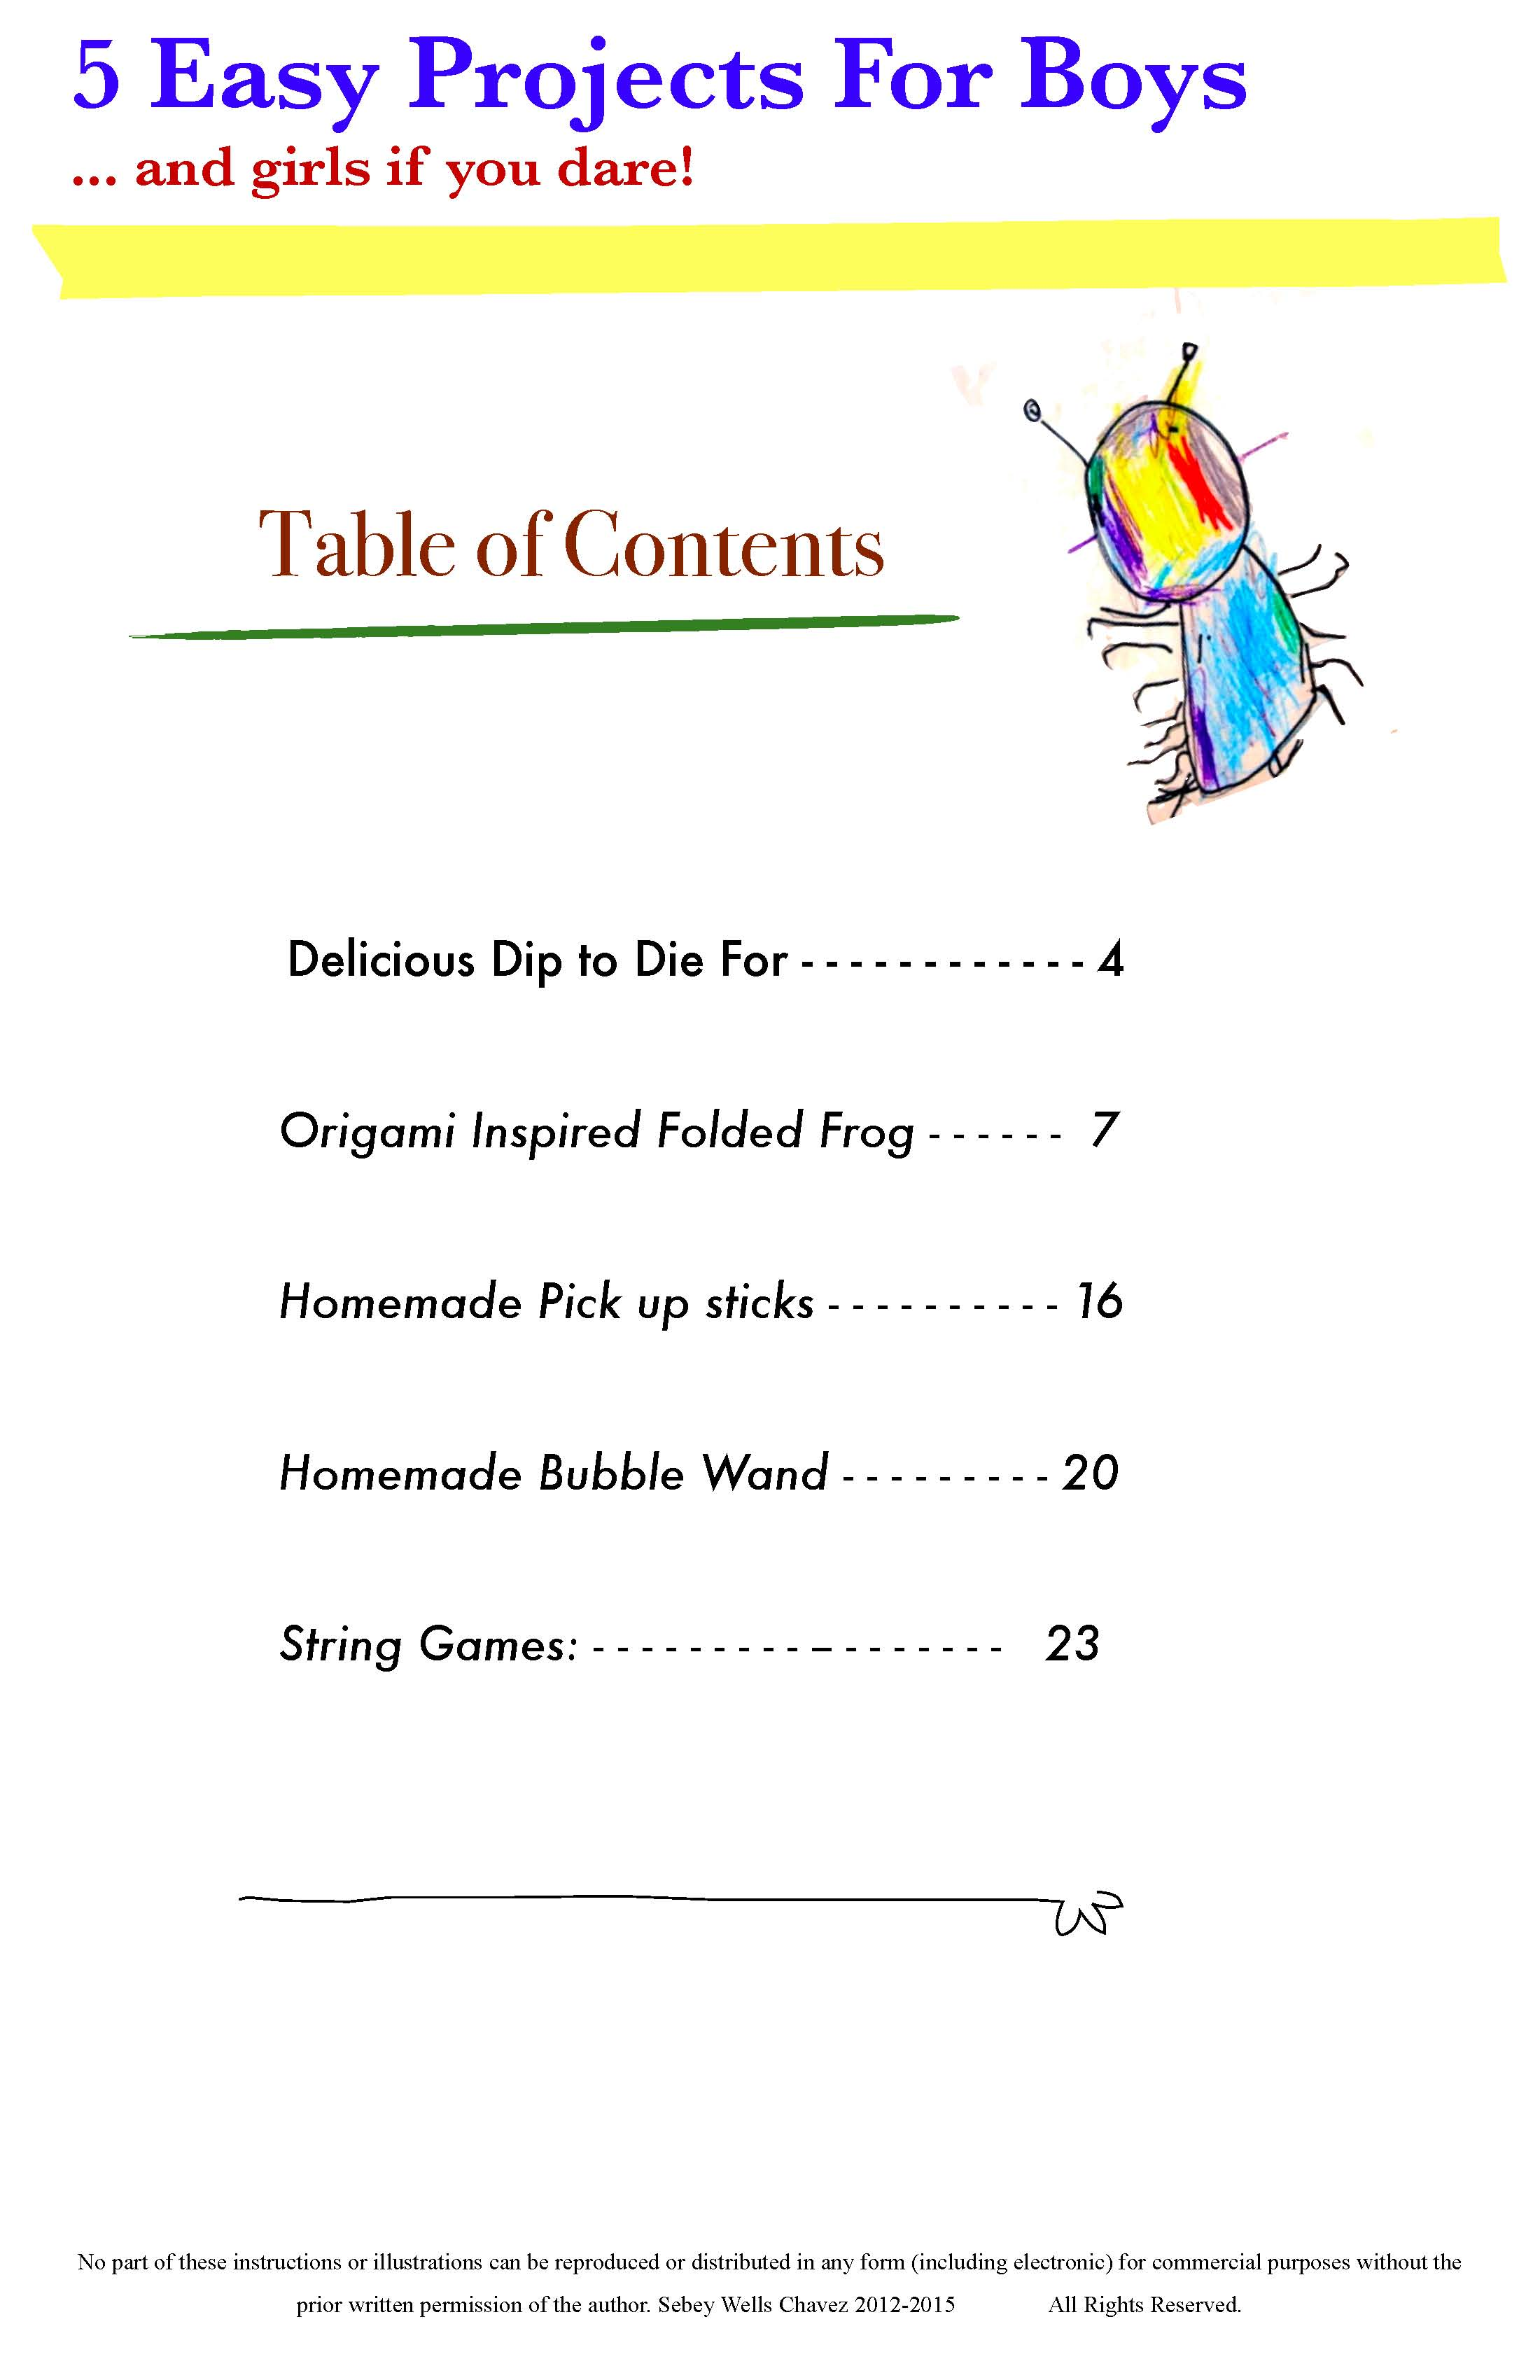 how to explain contents page to kids